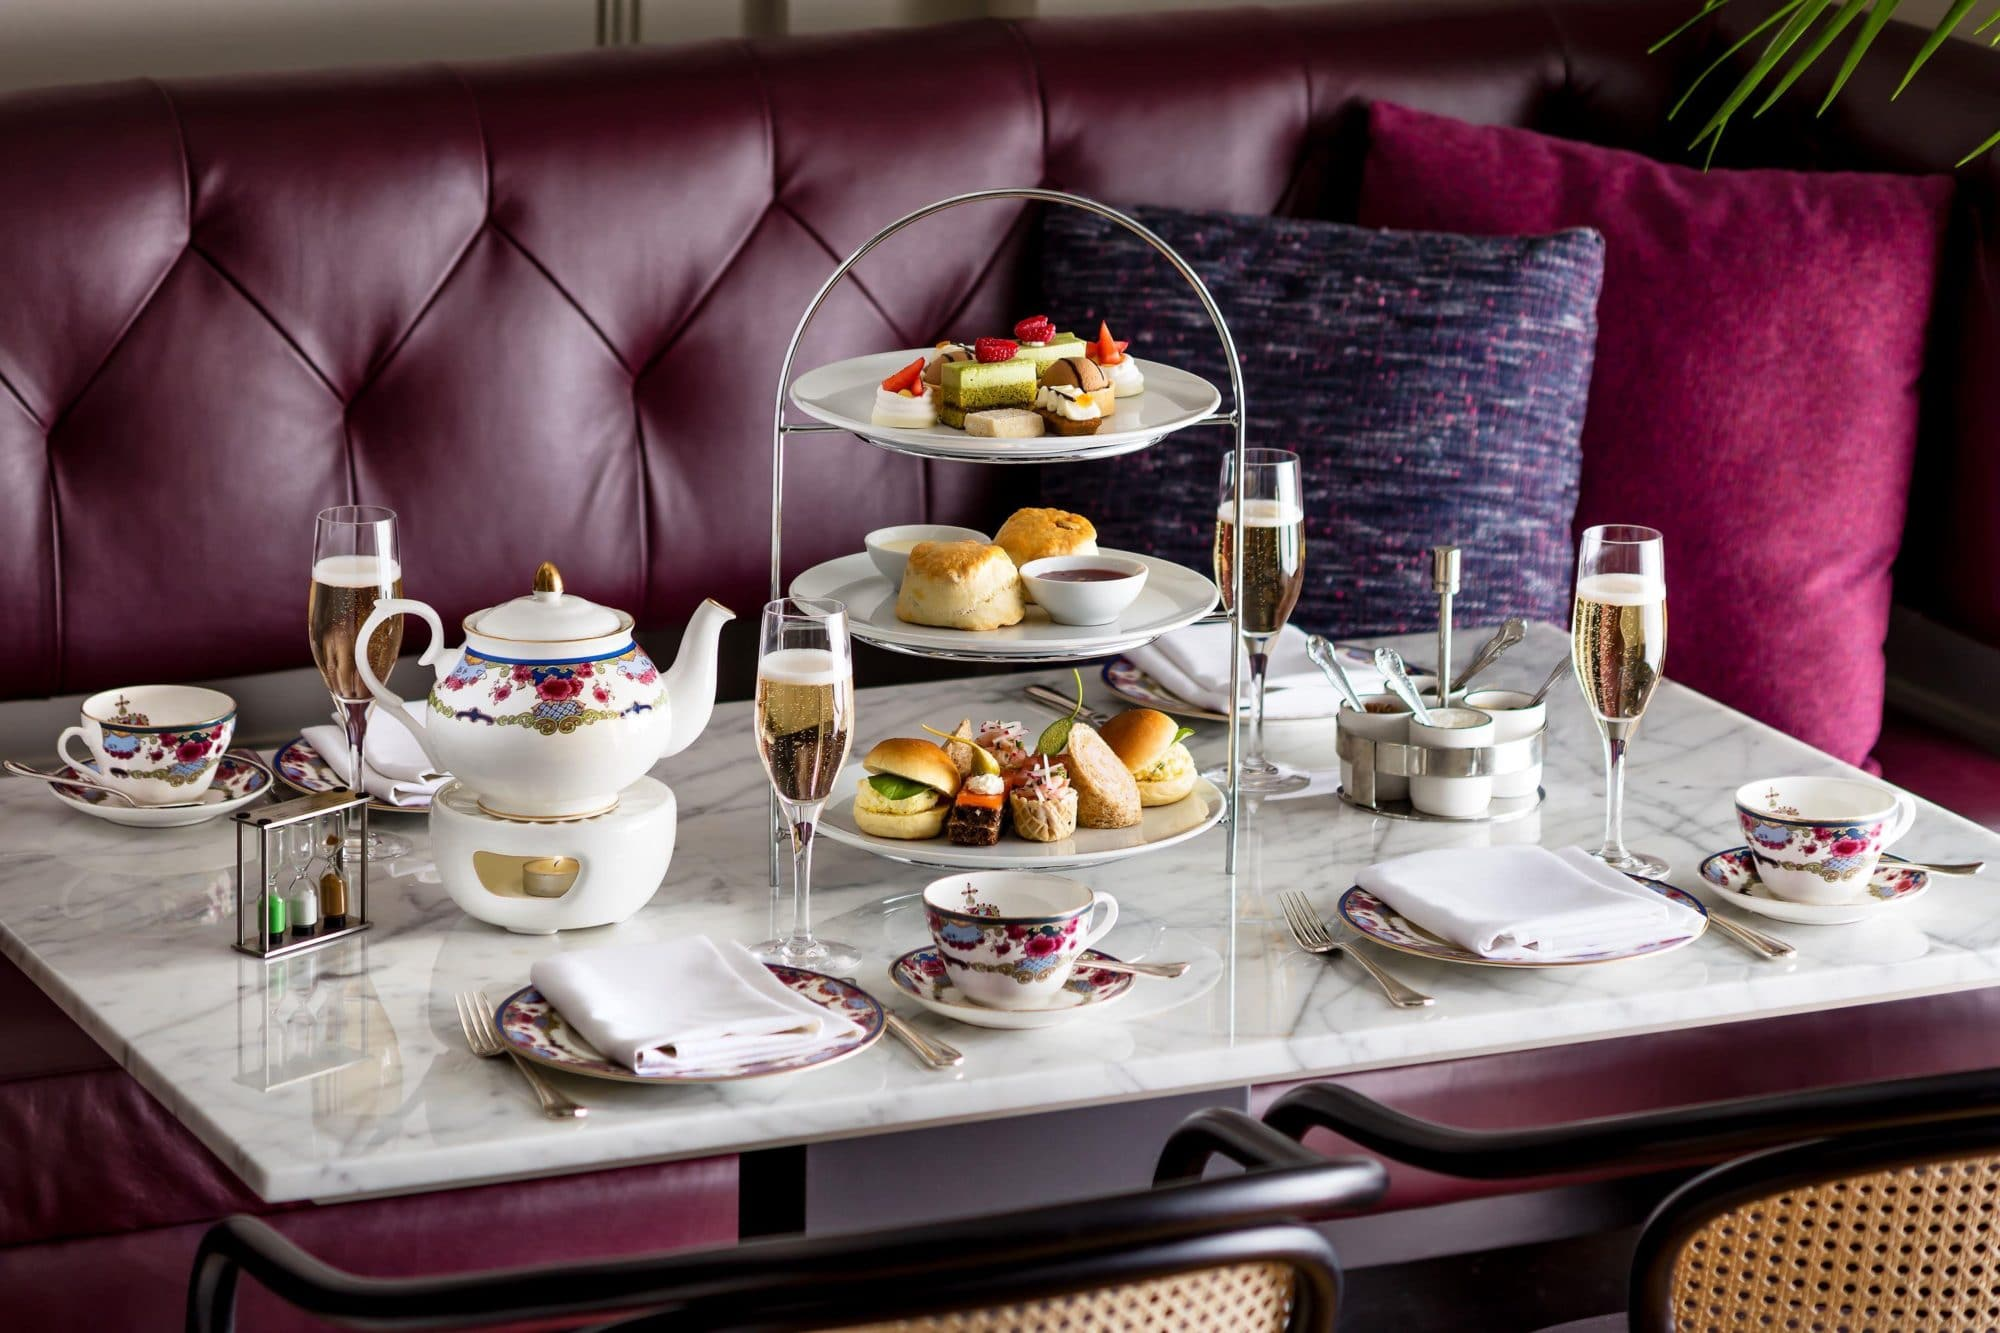 Canadian Road Trip Must-Do: High Tea at the Fairmont Empress in Victoria